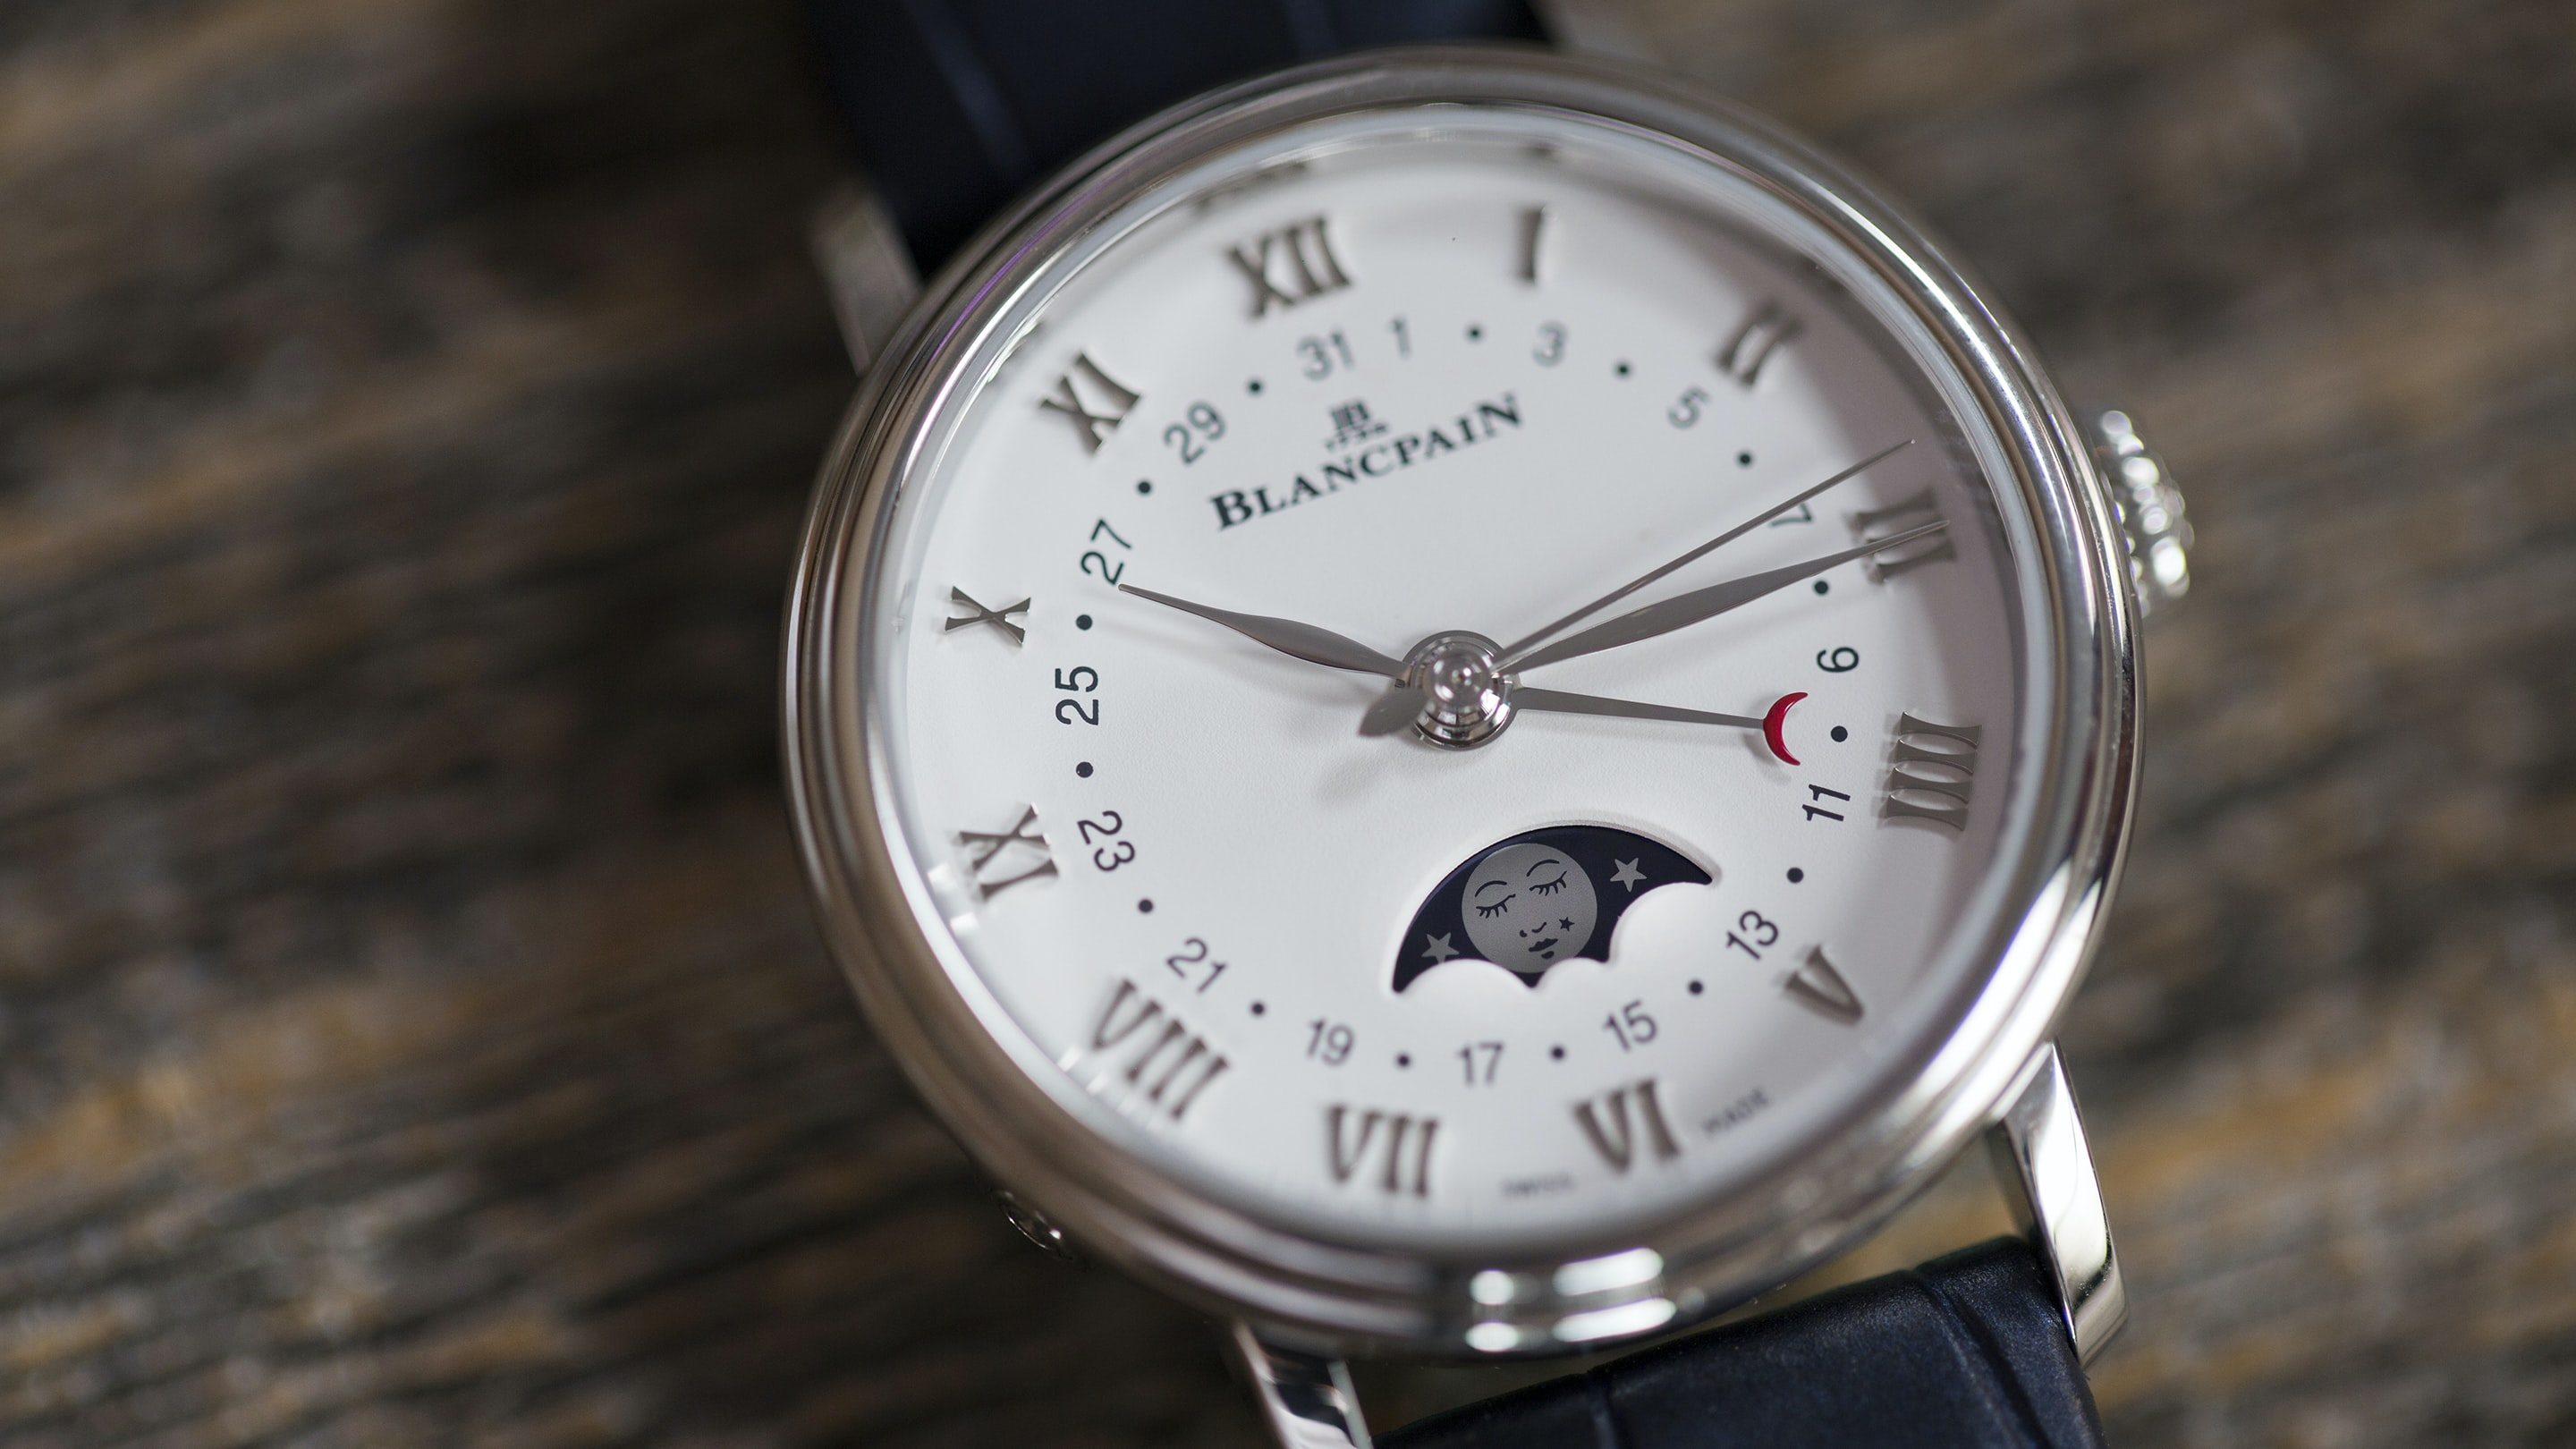 blancpain ladies moon phase hands-on: the blancpain villeret date moonphase ladies' watch Hands-On: The Blancpain Villeret Date Moonphase Ladies' Watch B89A3668 copy 2